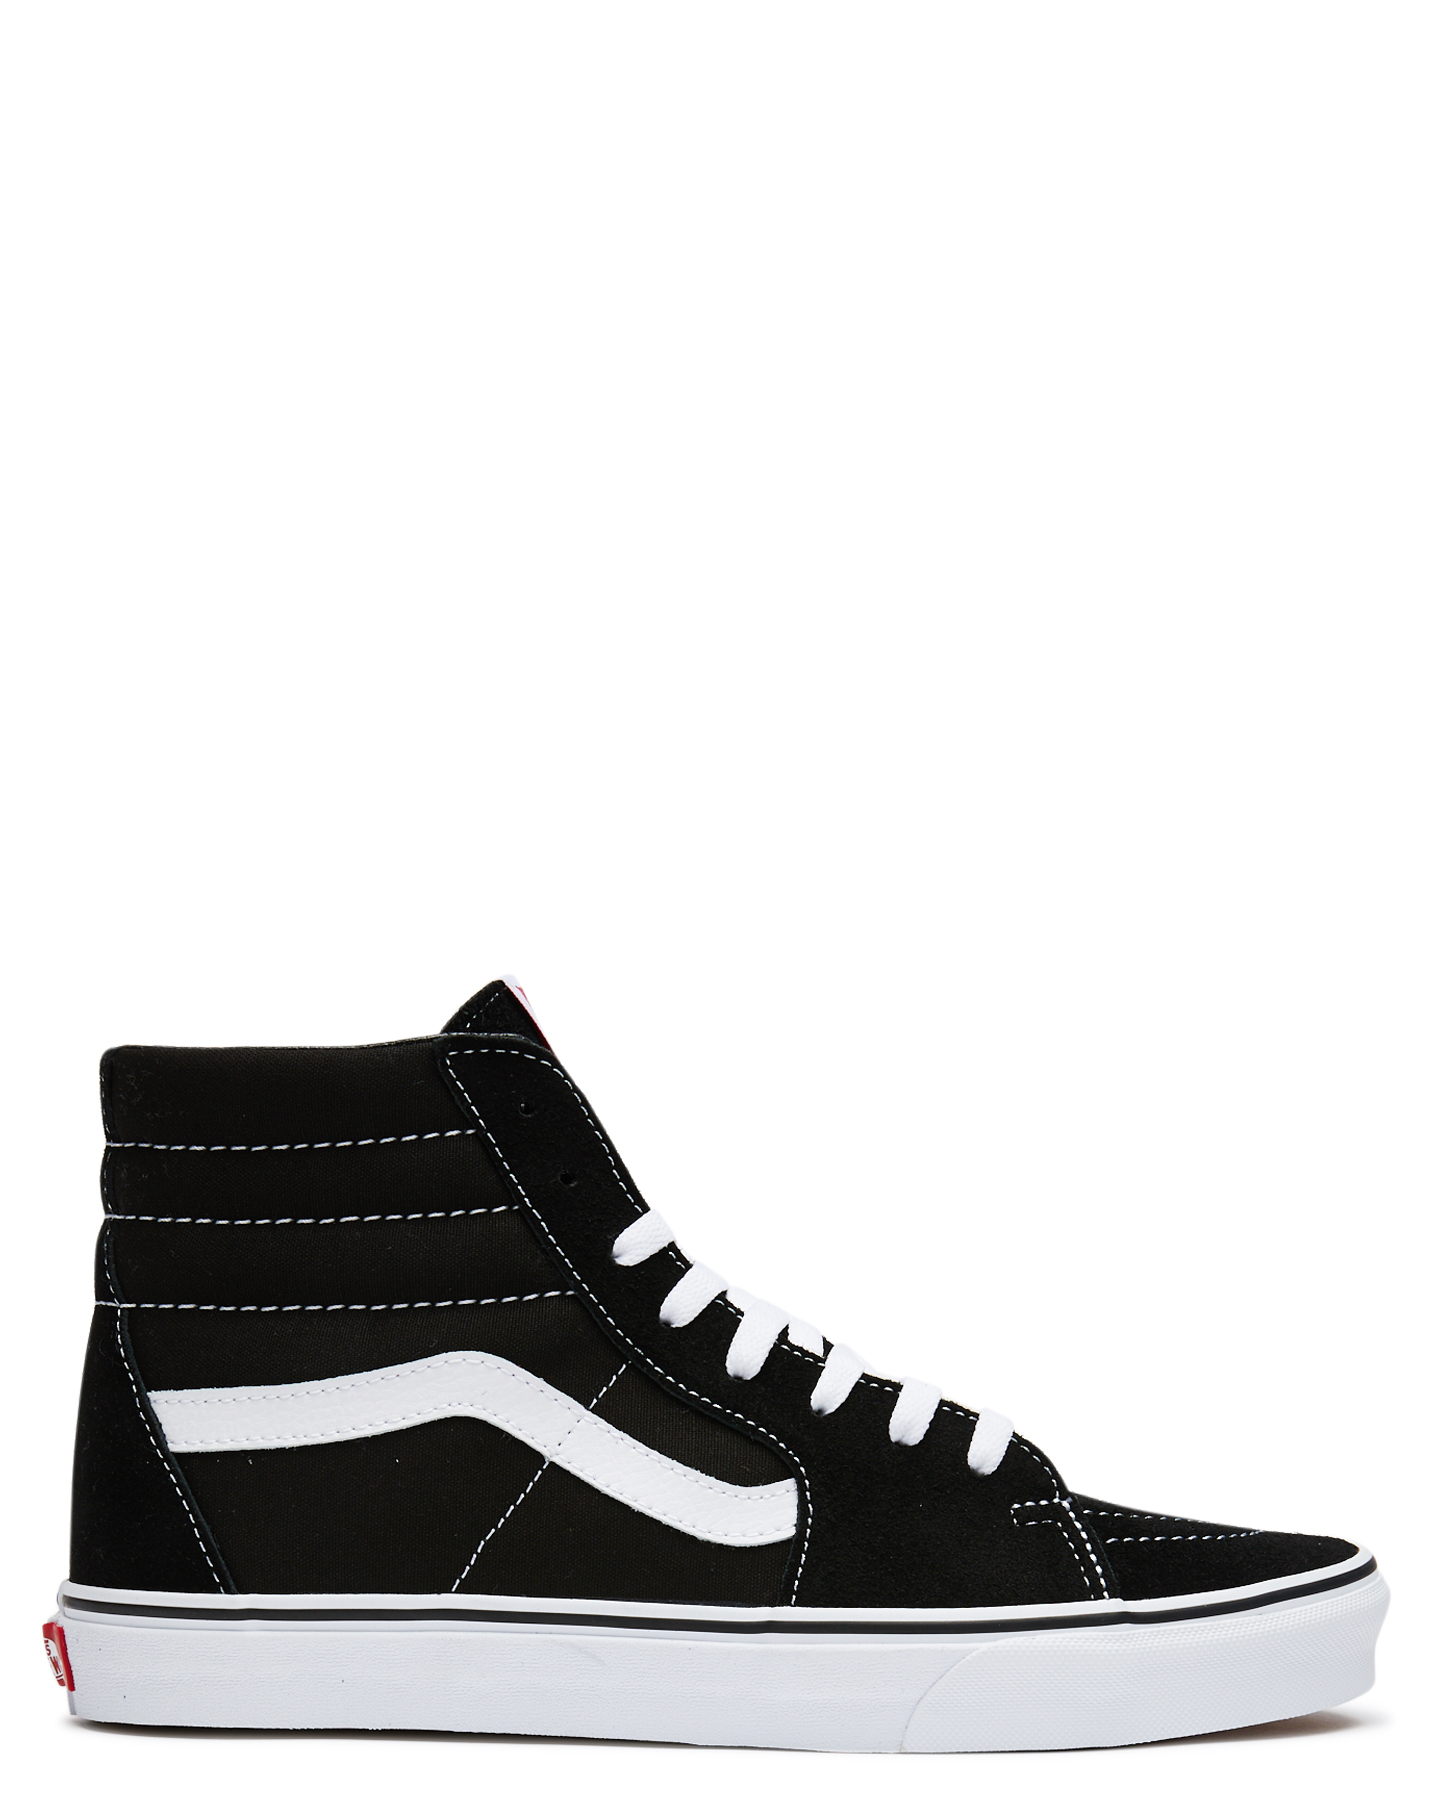 designer fashion f4cf5 c6033 VANS Womens Sk8 Hi Shoe